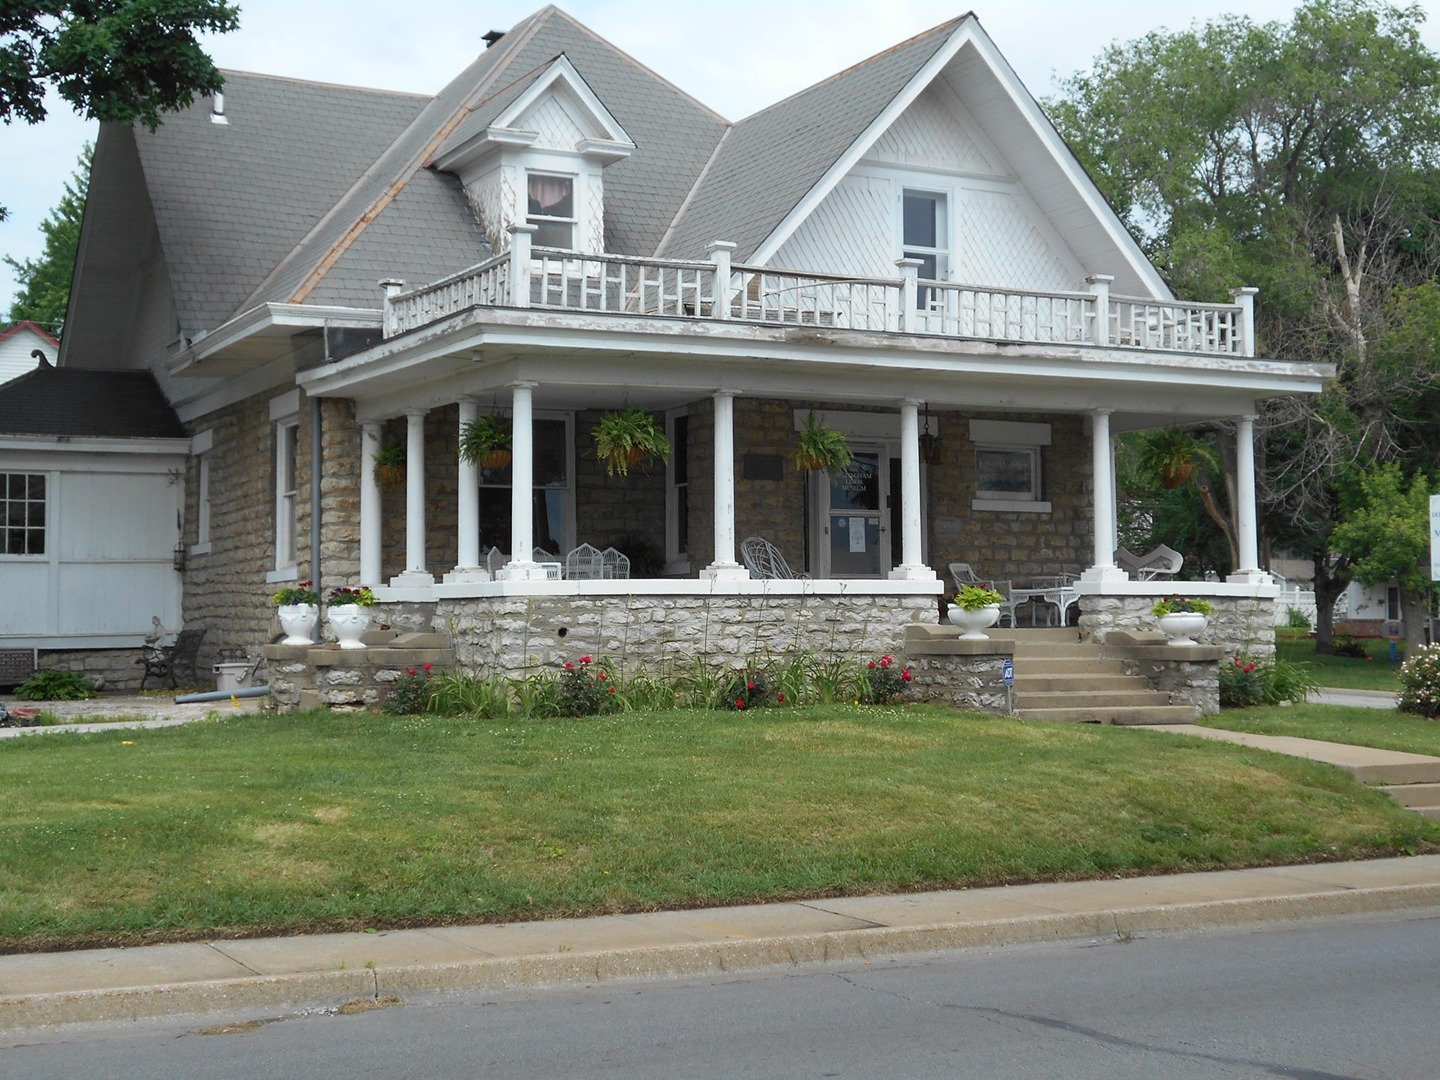 The Blue Springs Historical Society maintains this historic home as a local history museum.